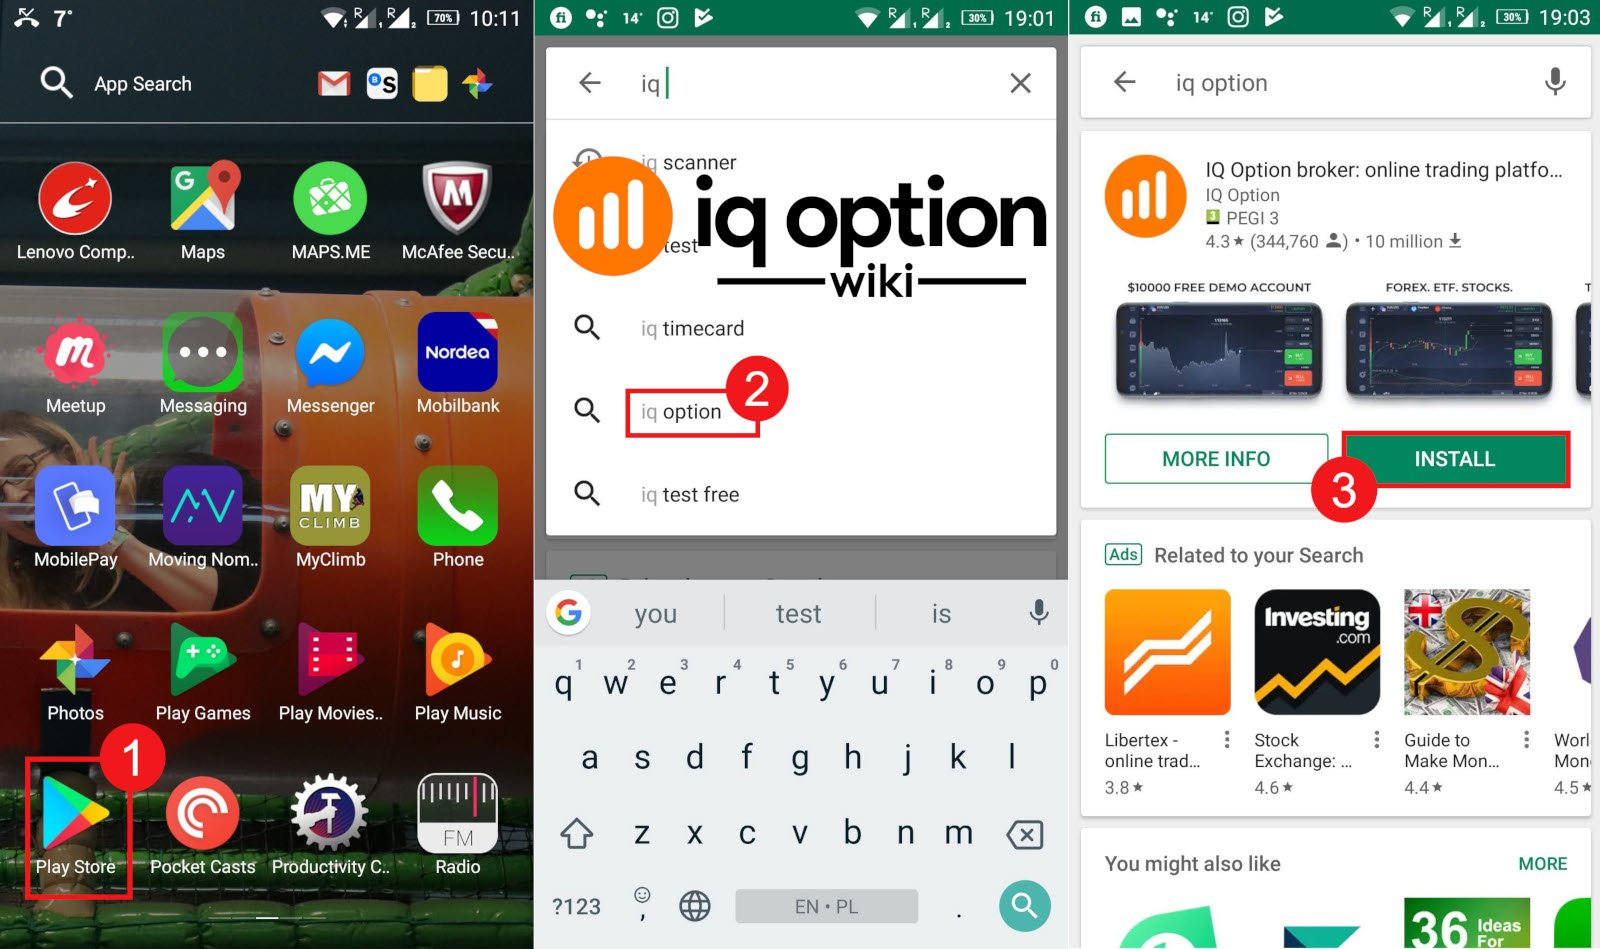 Guide for Downloading and Installing the IQ Option App on